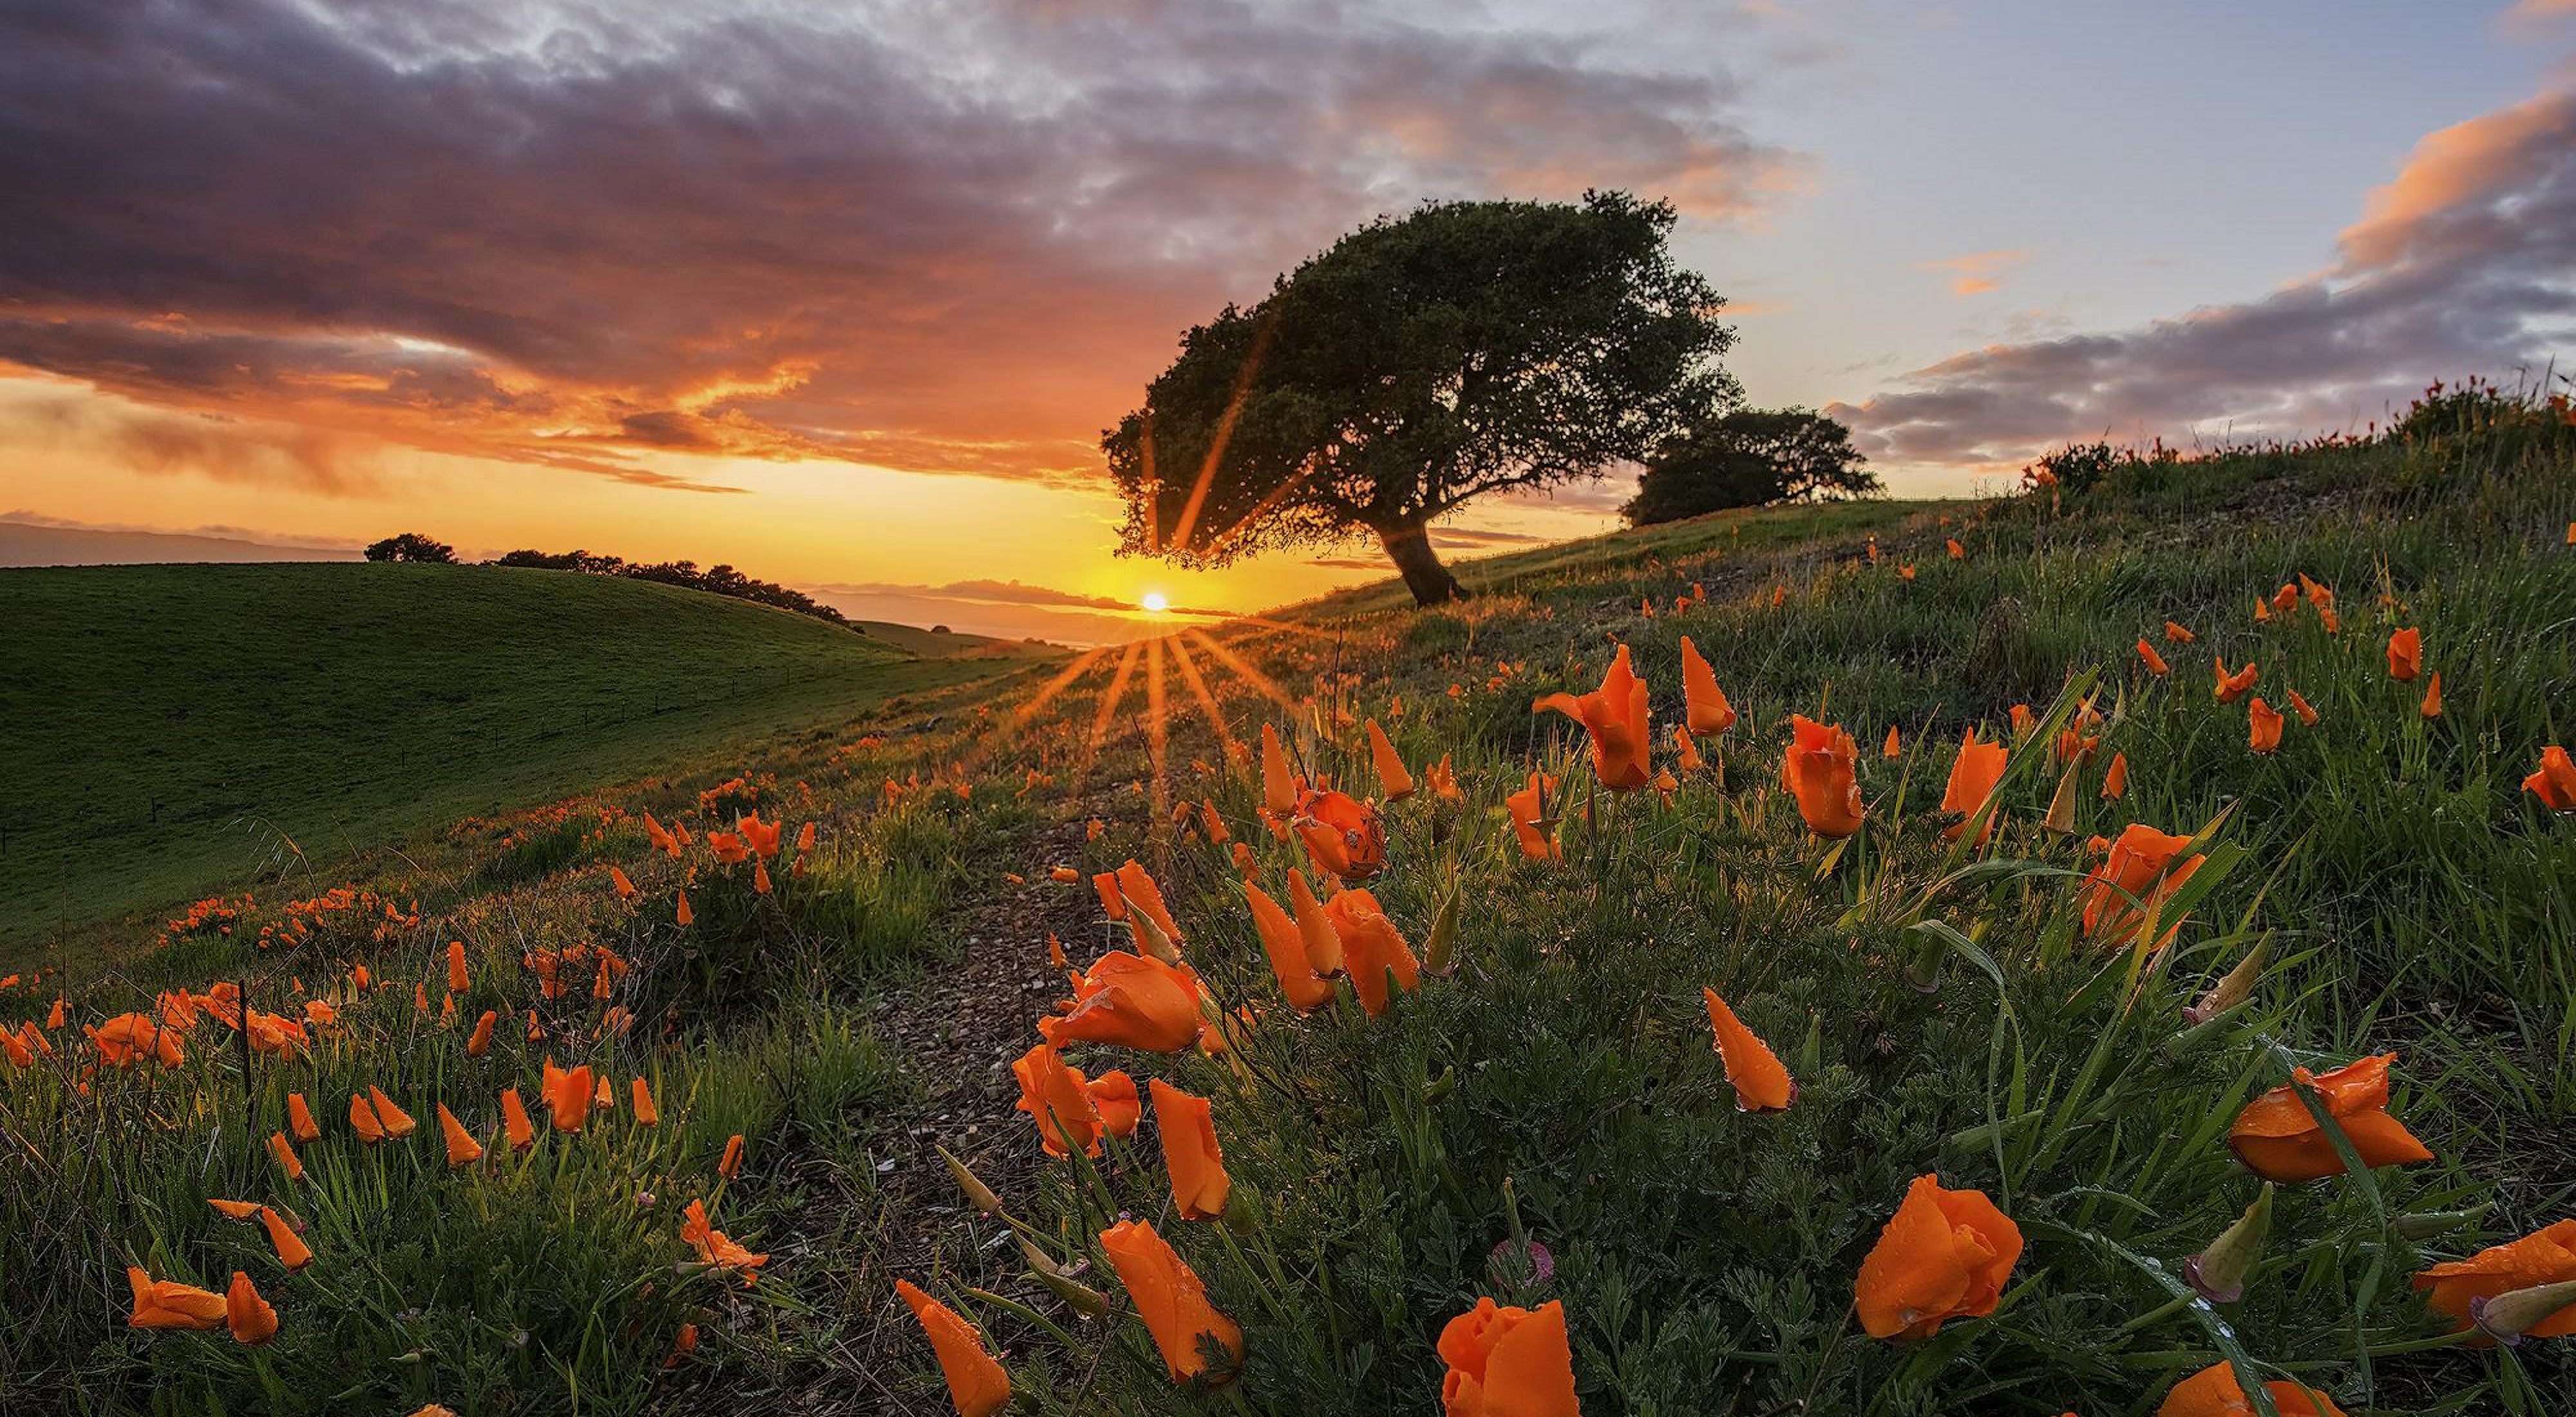 A sunset after a rain in california poppy covered hills.